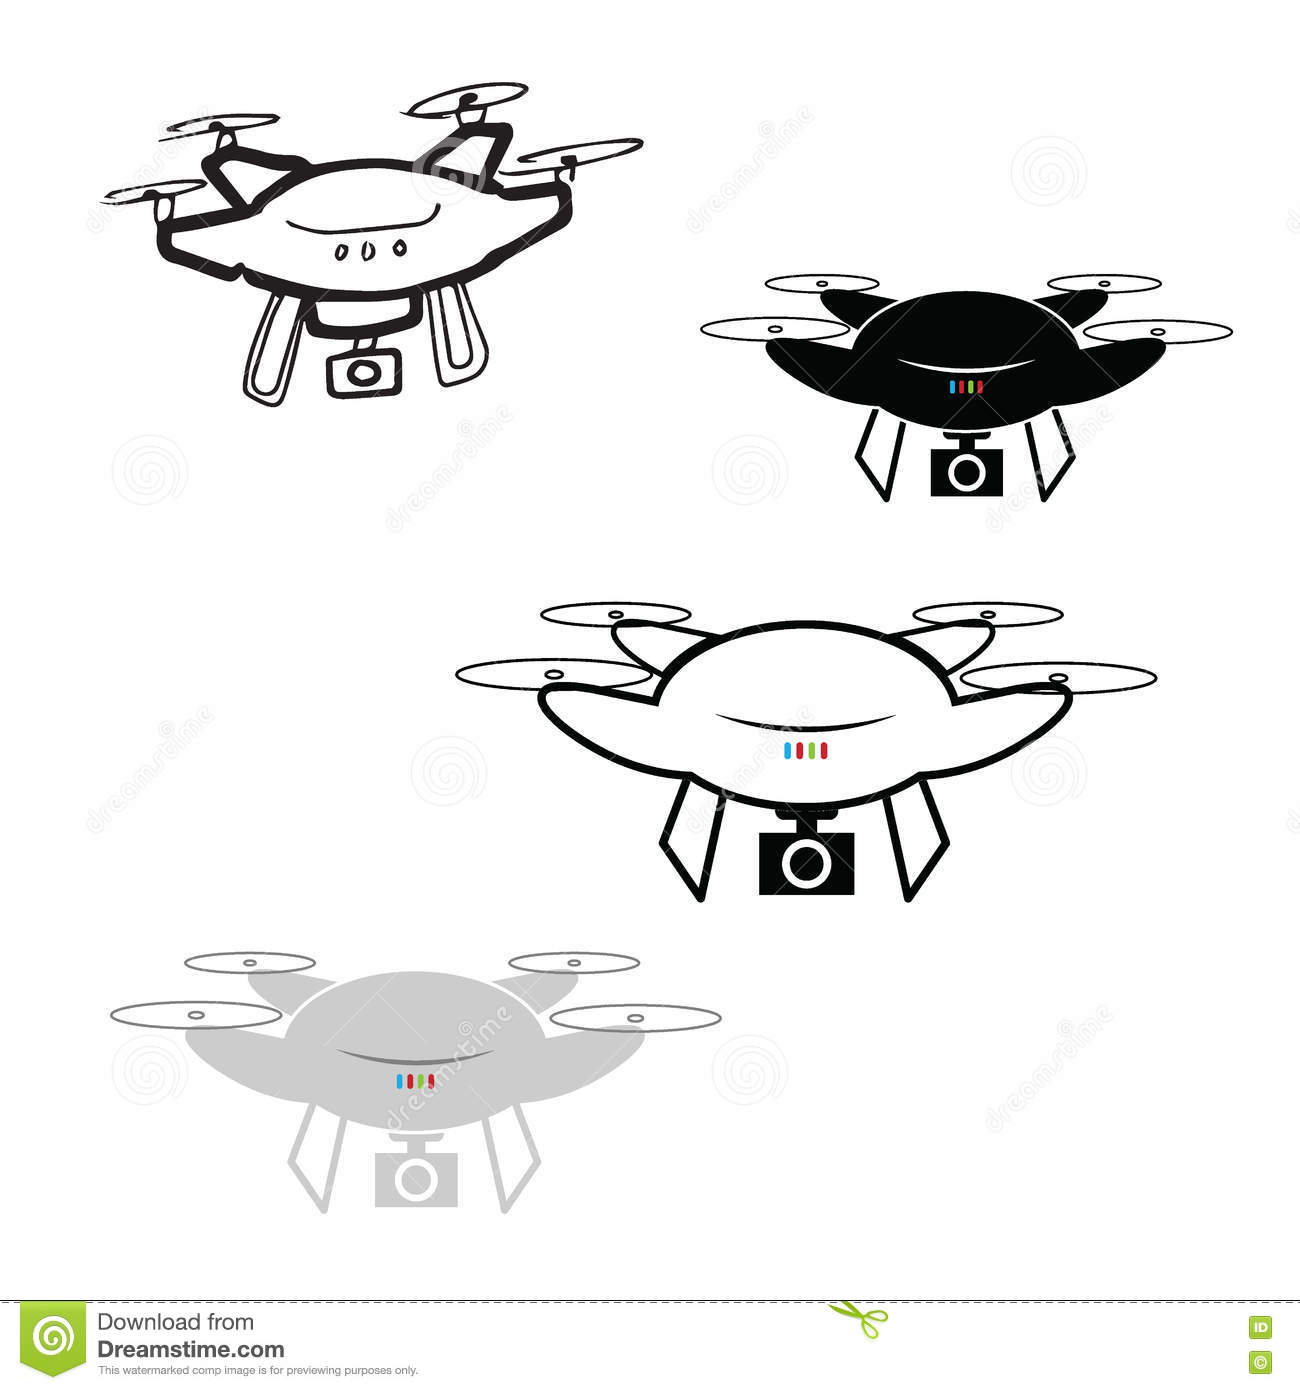 Drone Quadcopter With Camera Icons